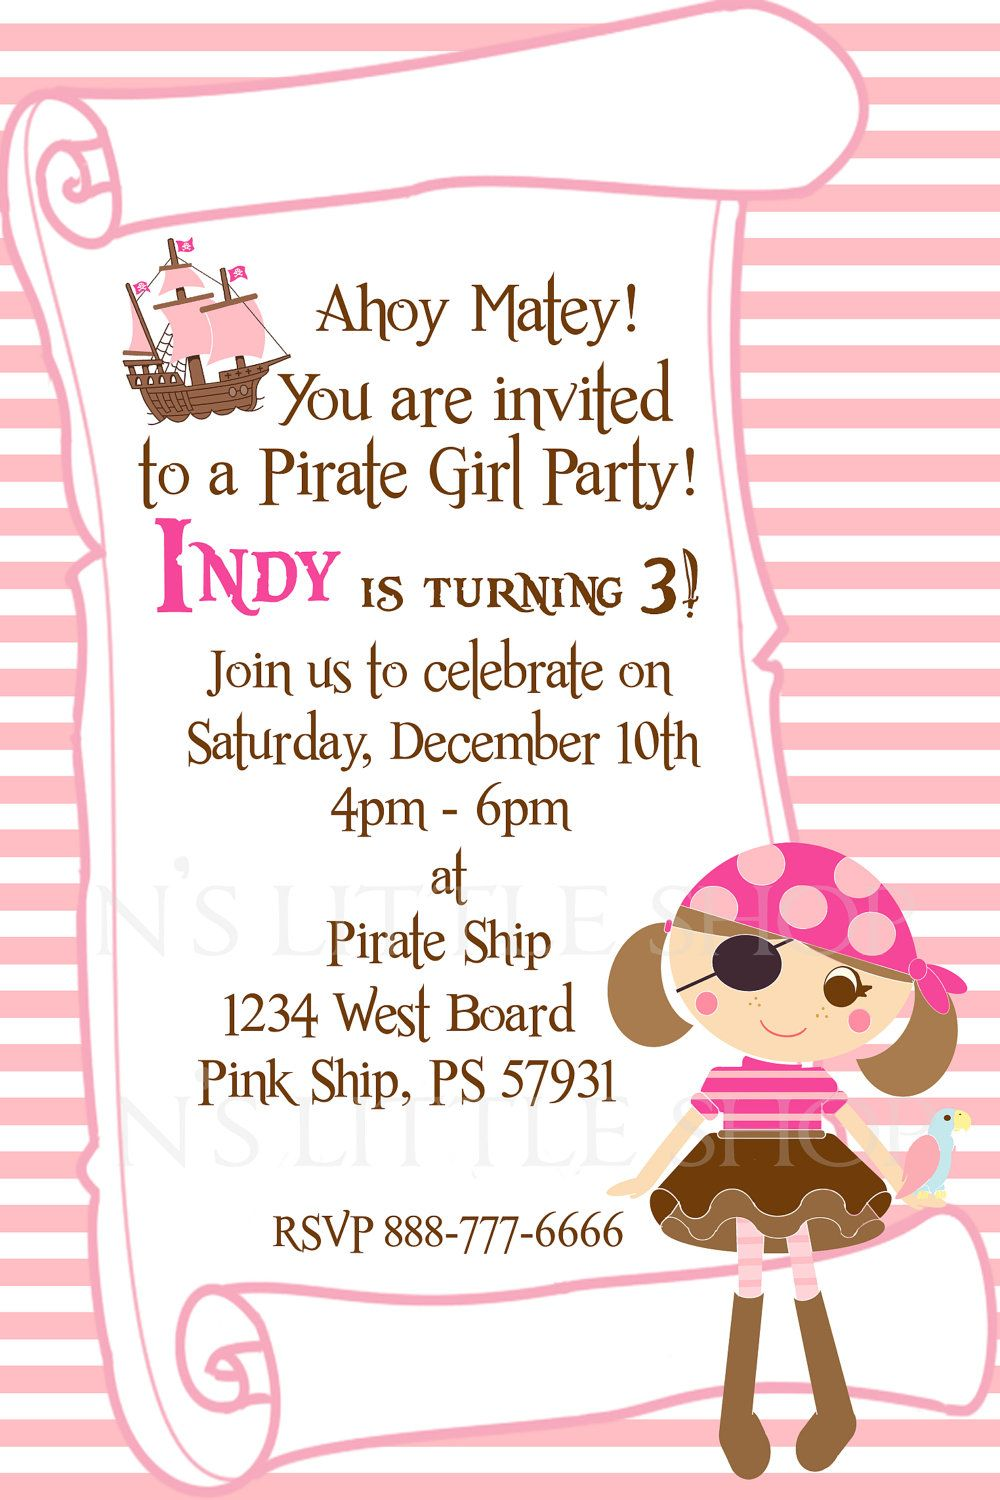 Pirate girl party invitation card for a girl customize pirate girl party invitation card for a girl customize printable 1000 via stopboris Images